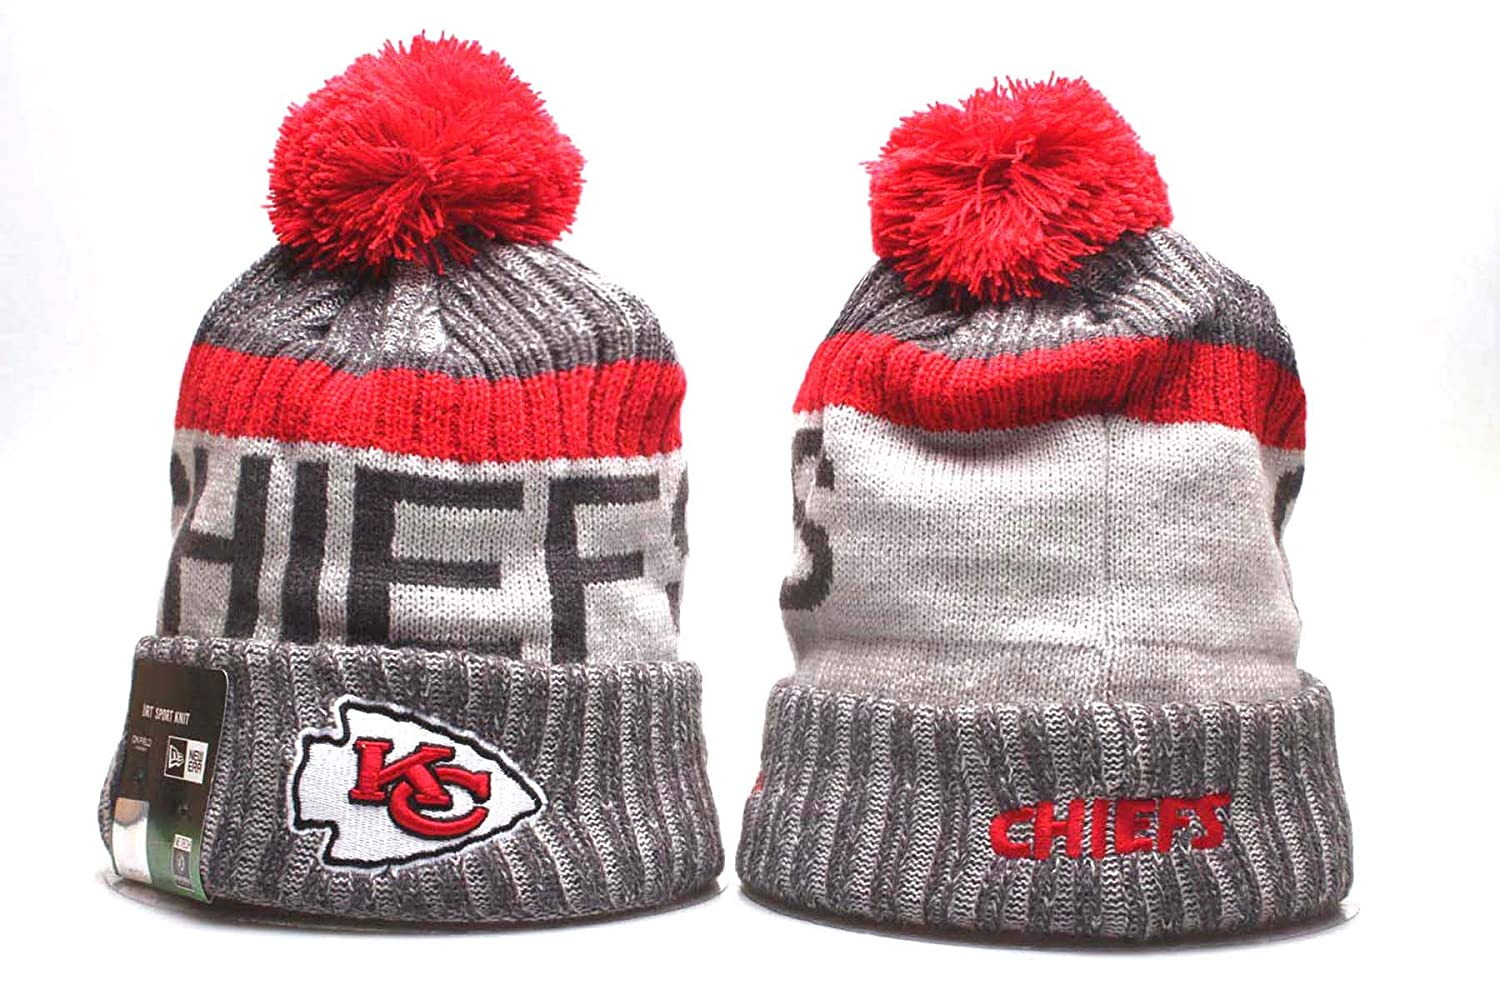 Shenyizhu Mens Knit Champs Football Team Beanie Cuffed Hat Toque Cap with Pom